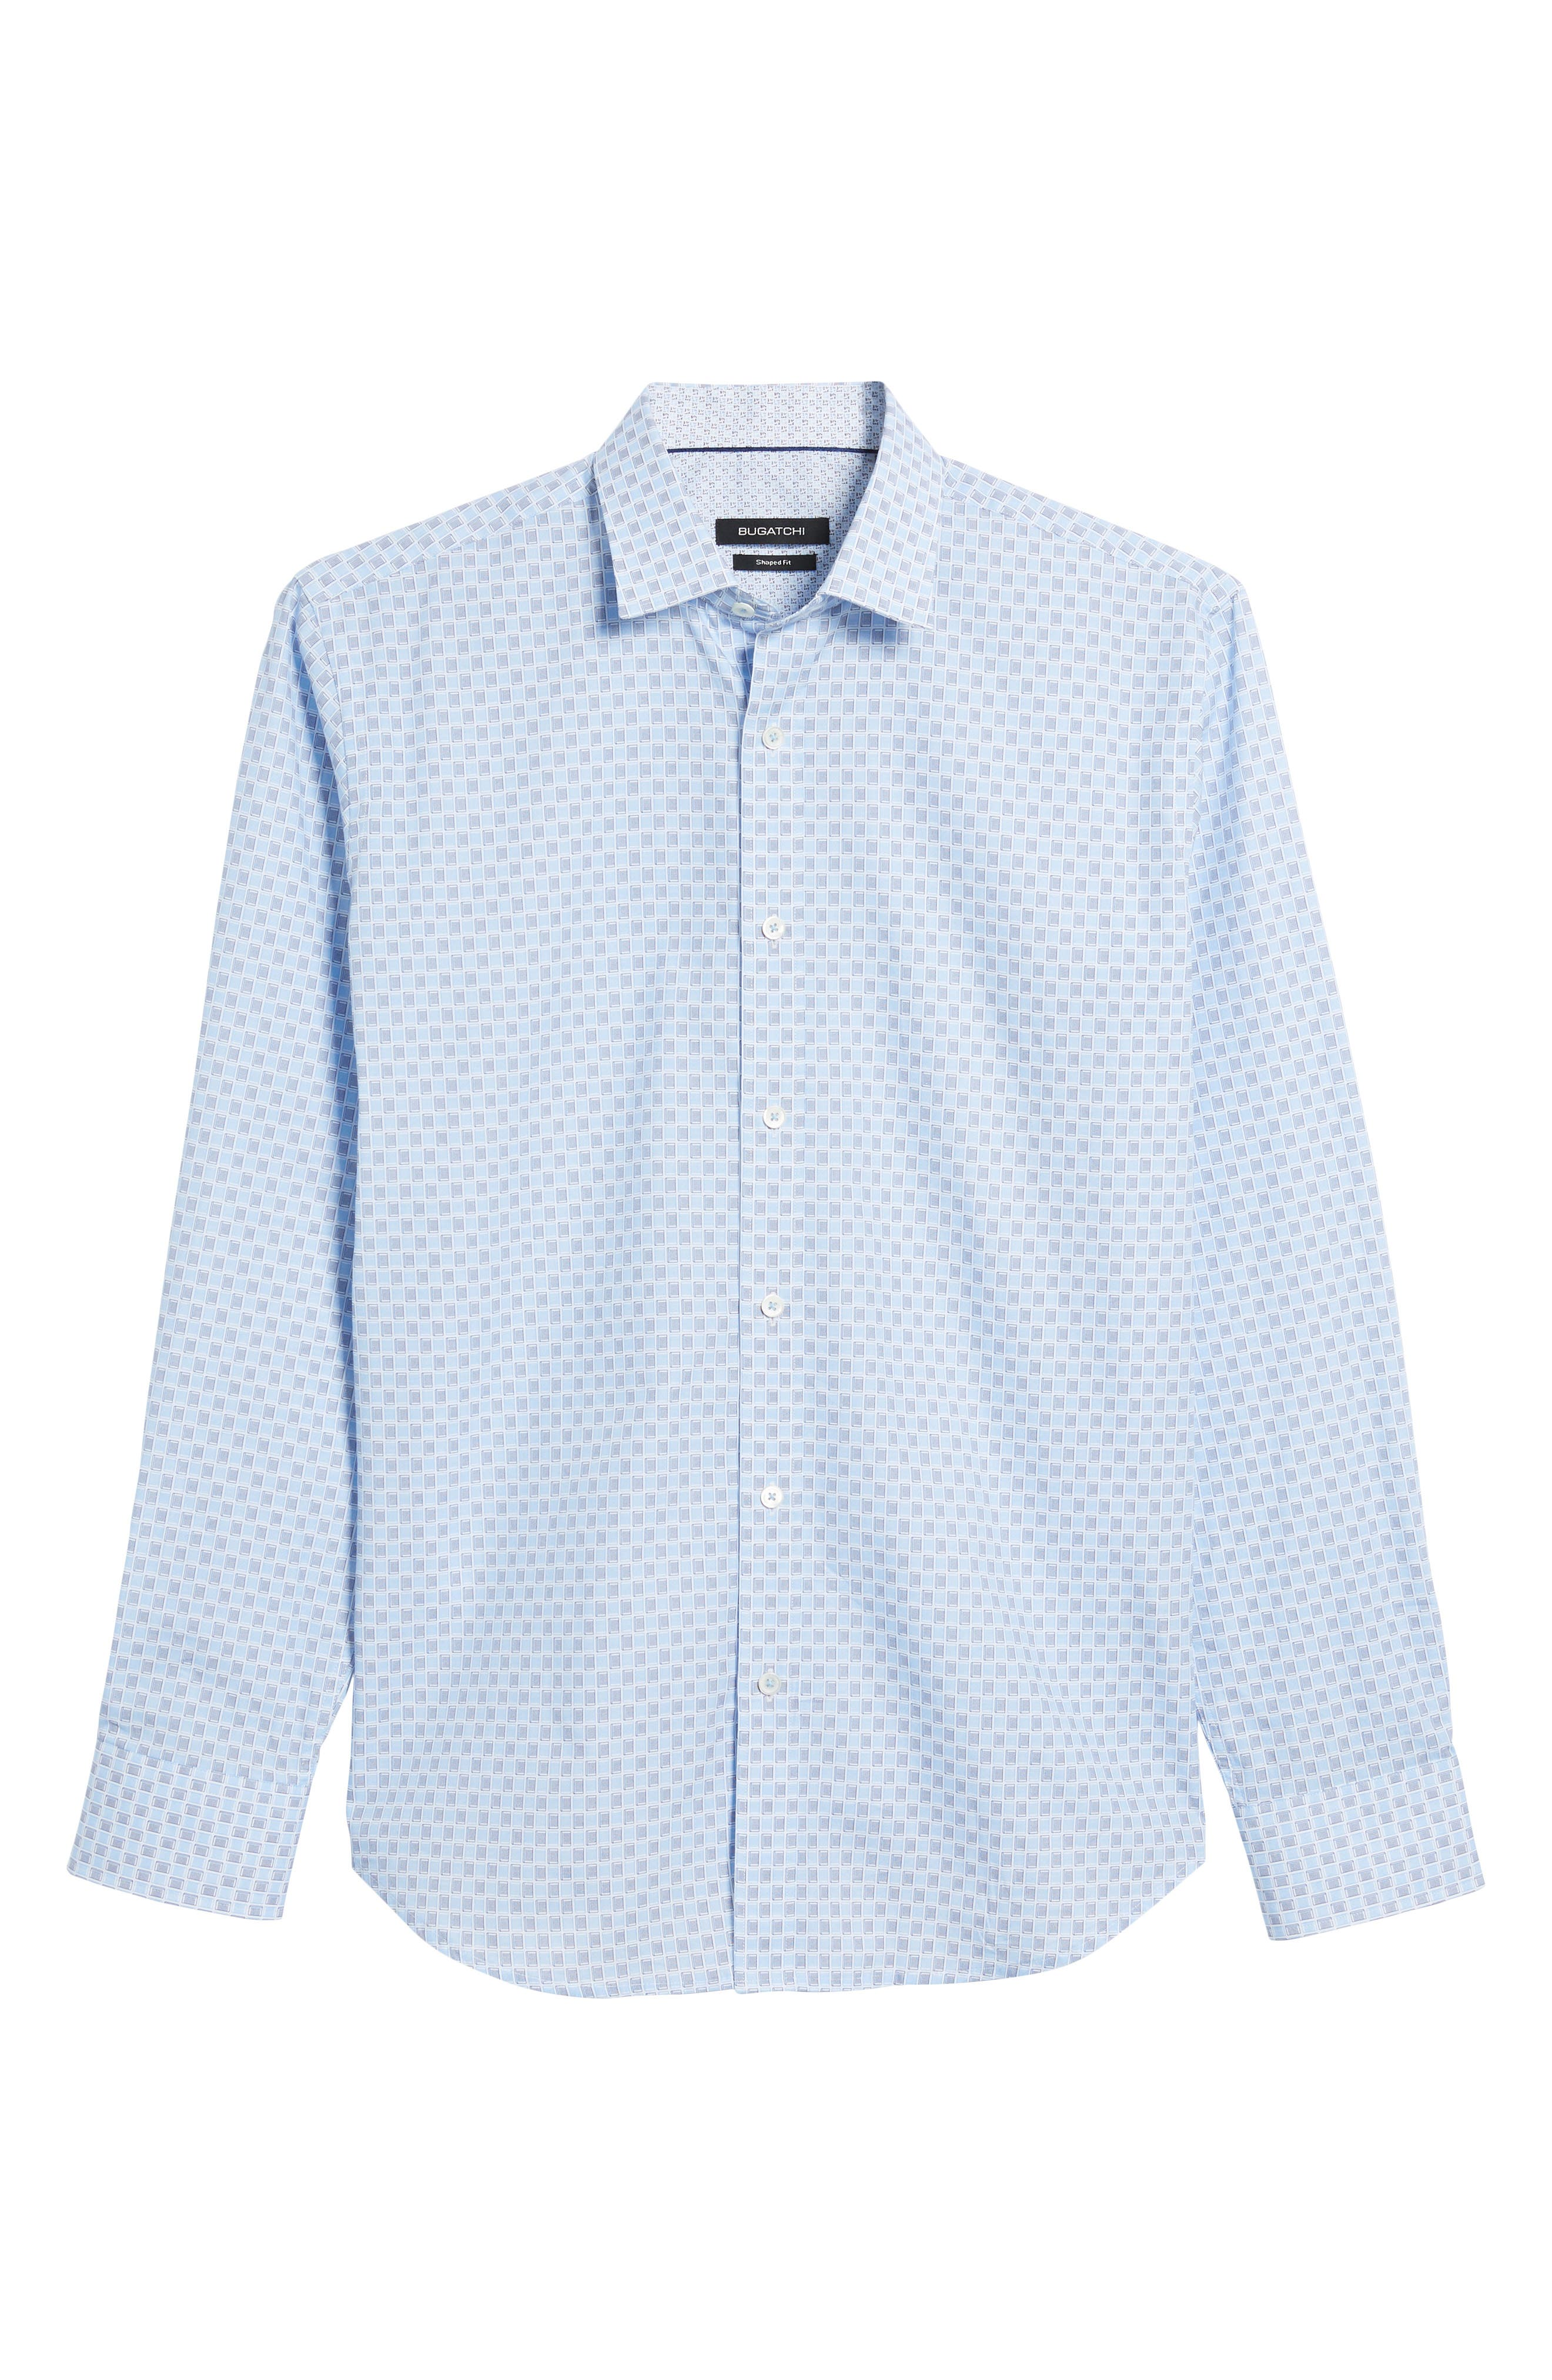 Shaped Fit Ice Cube Check Sport Shirt,                             Alternate thumbnail 6, color,                             Ice Blue